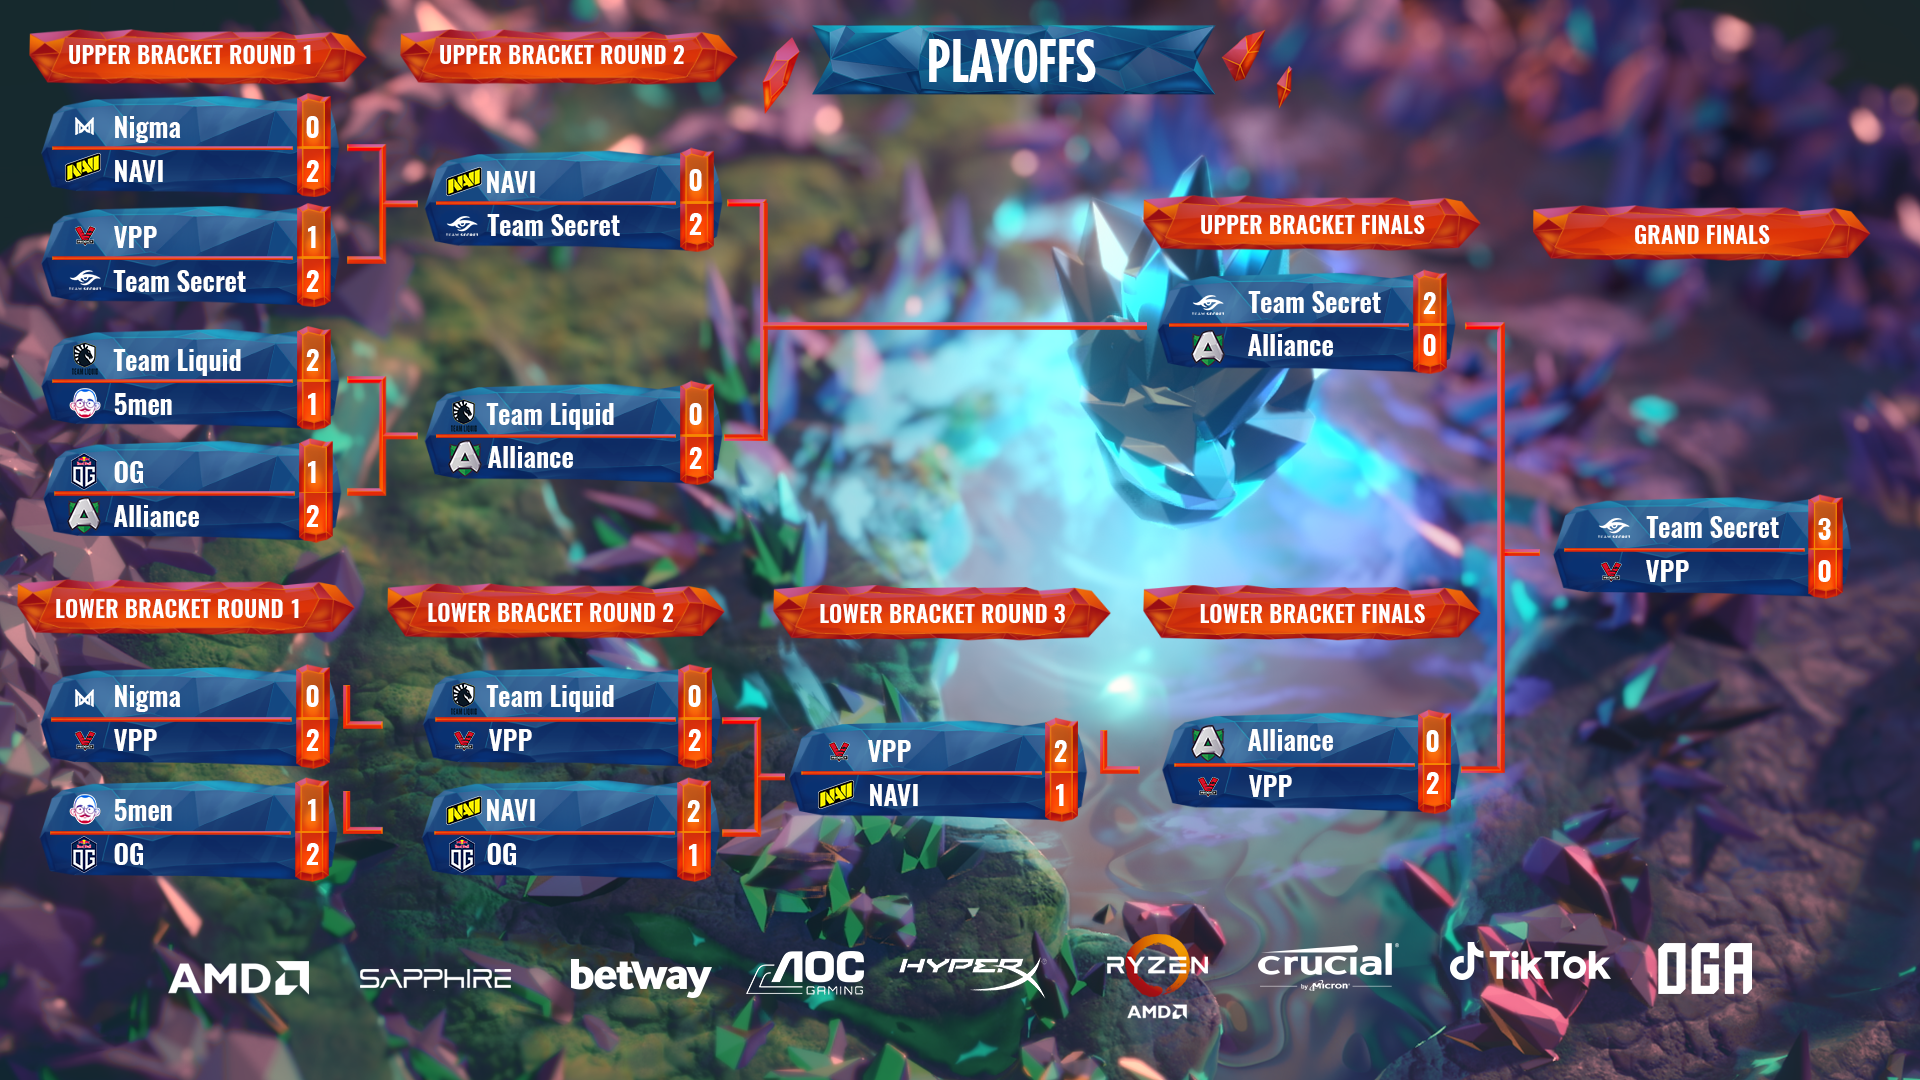 https://www.dotapit.com/wp-content/uploads/2020/09/bracket-eu-cis-1.png